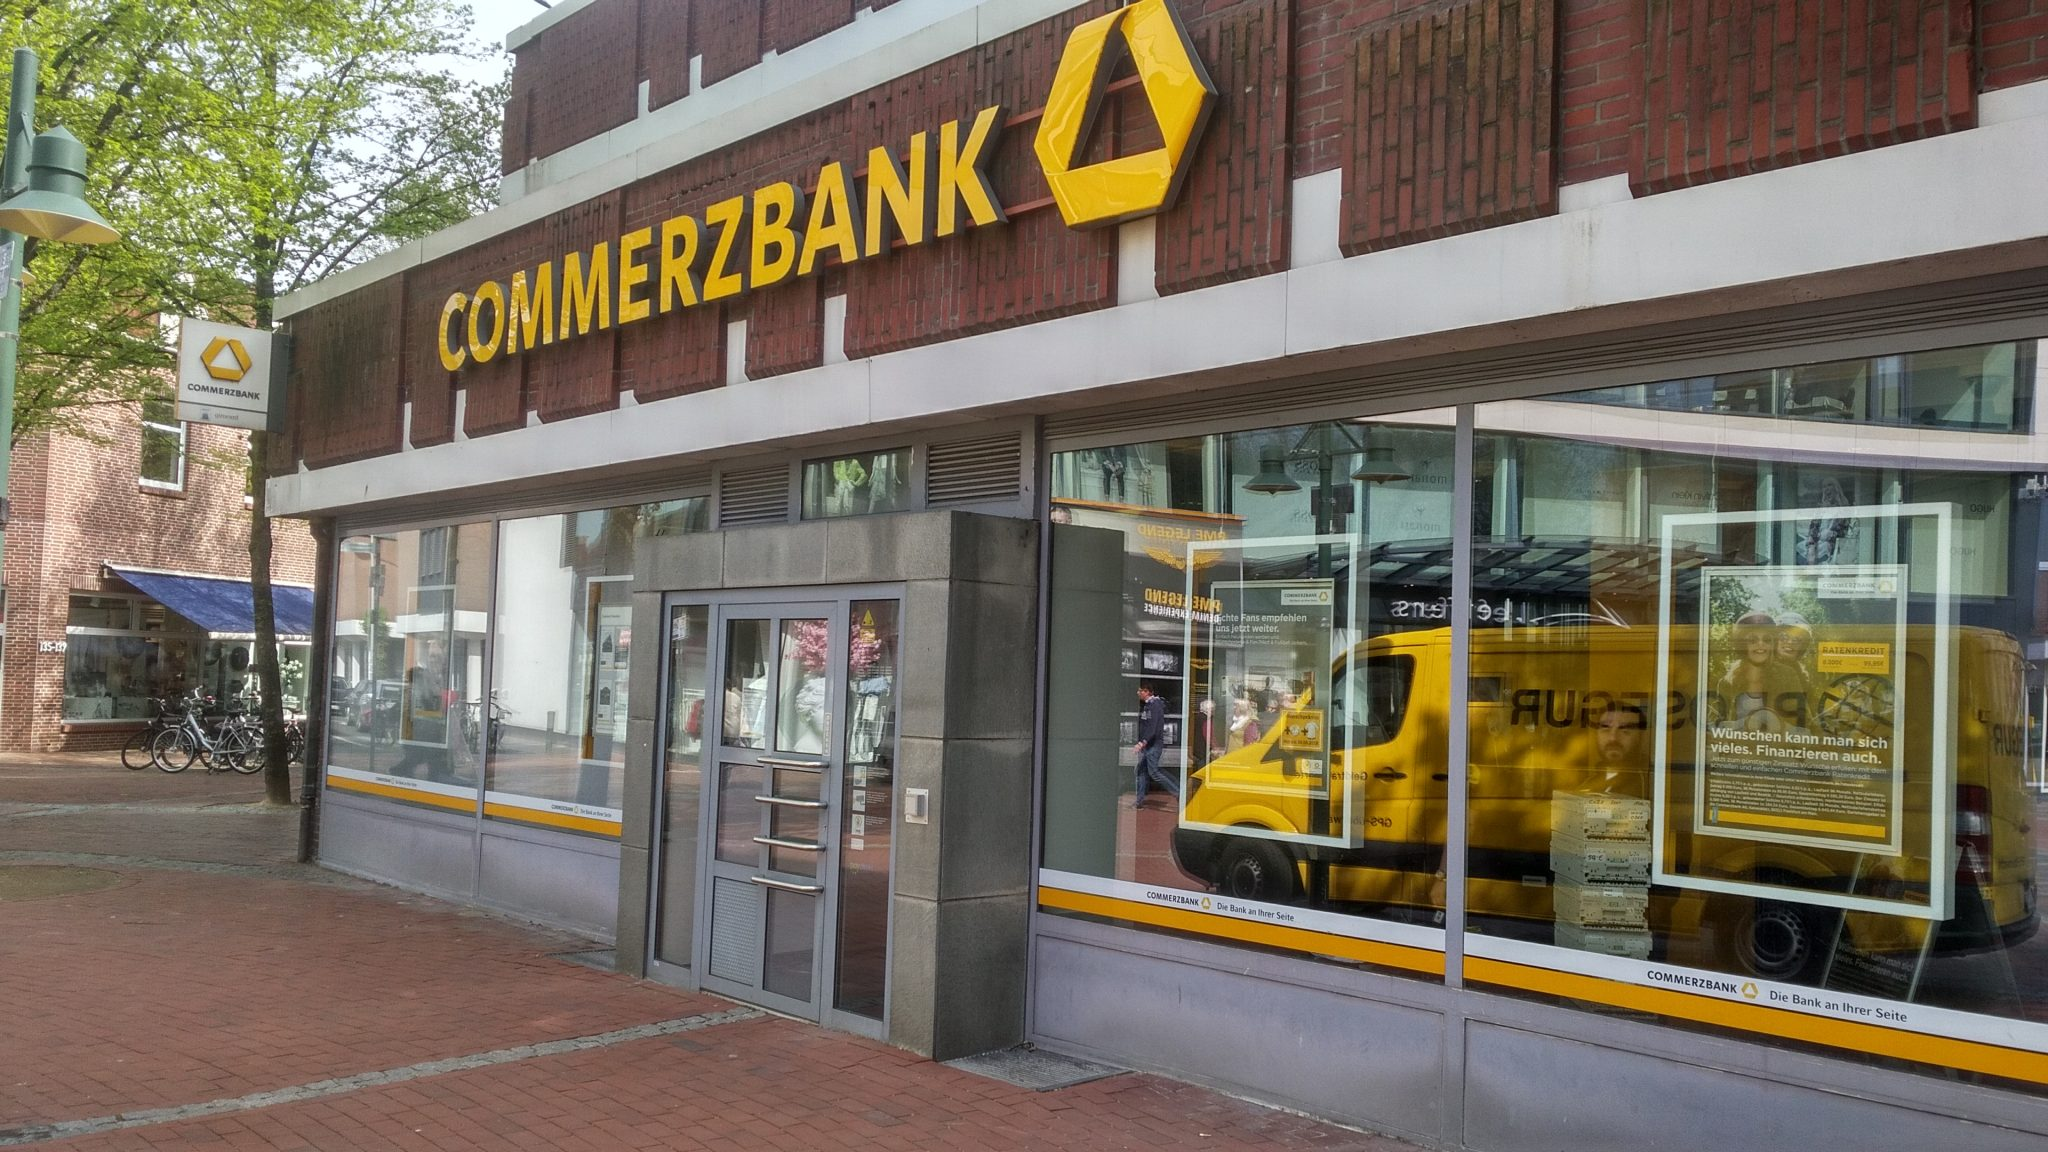 Commerzbank finalises 10,000 job cuts after agreement with employees